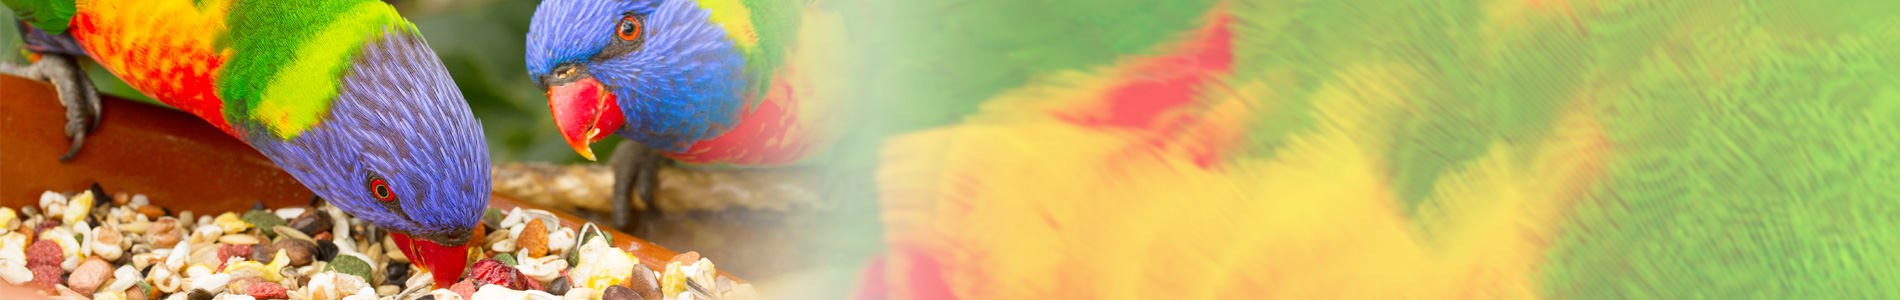 BANNER2-parots-food